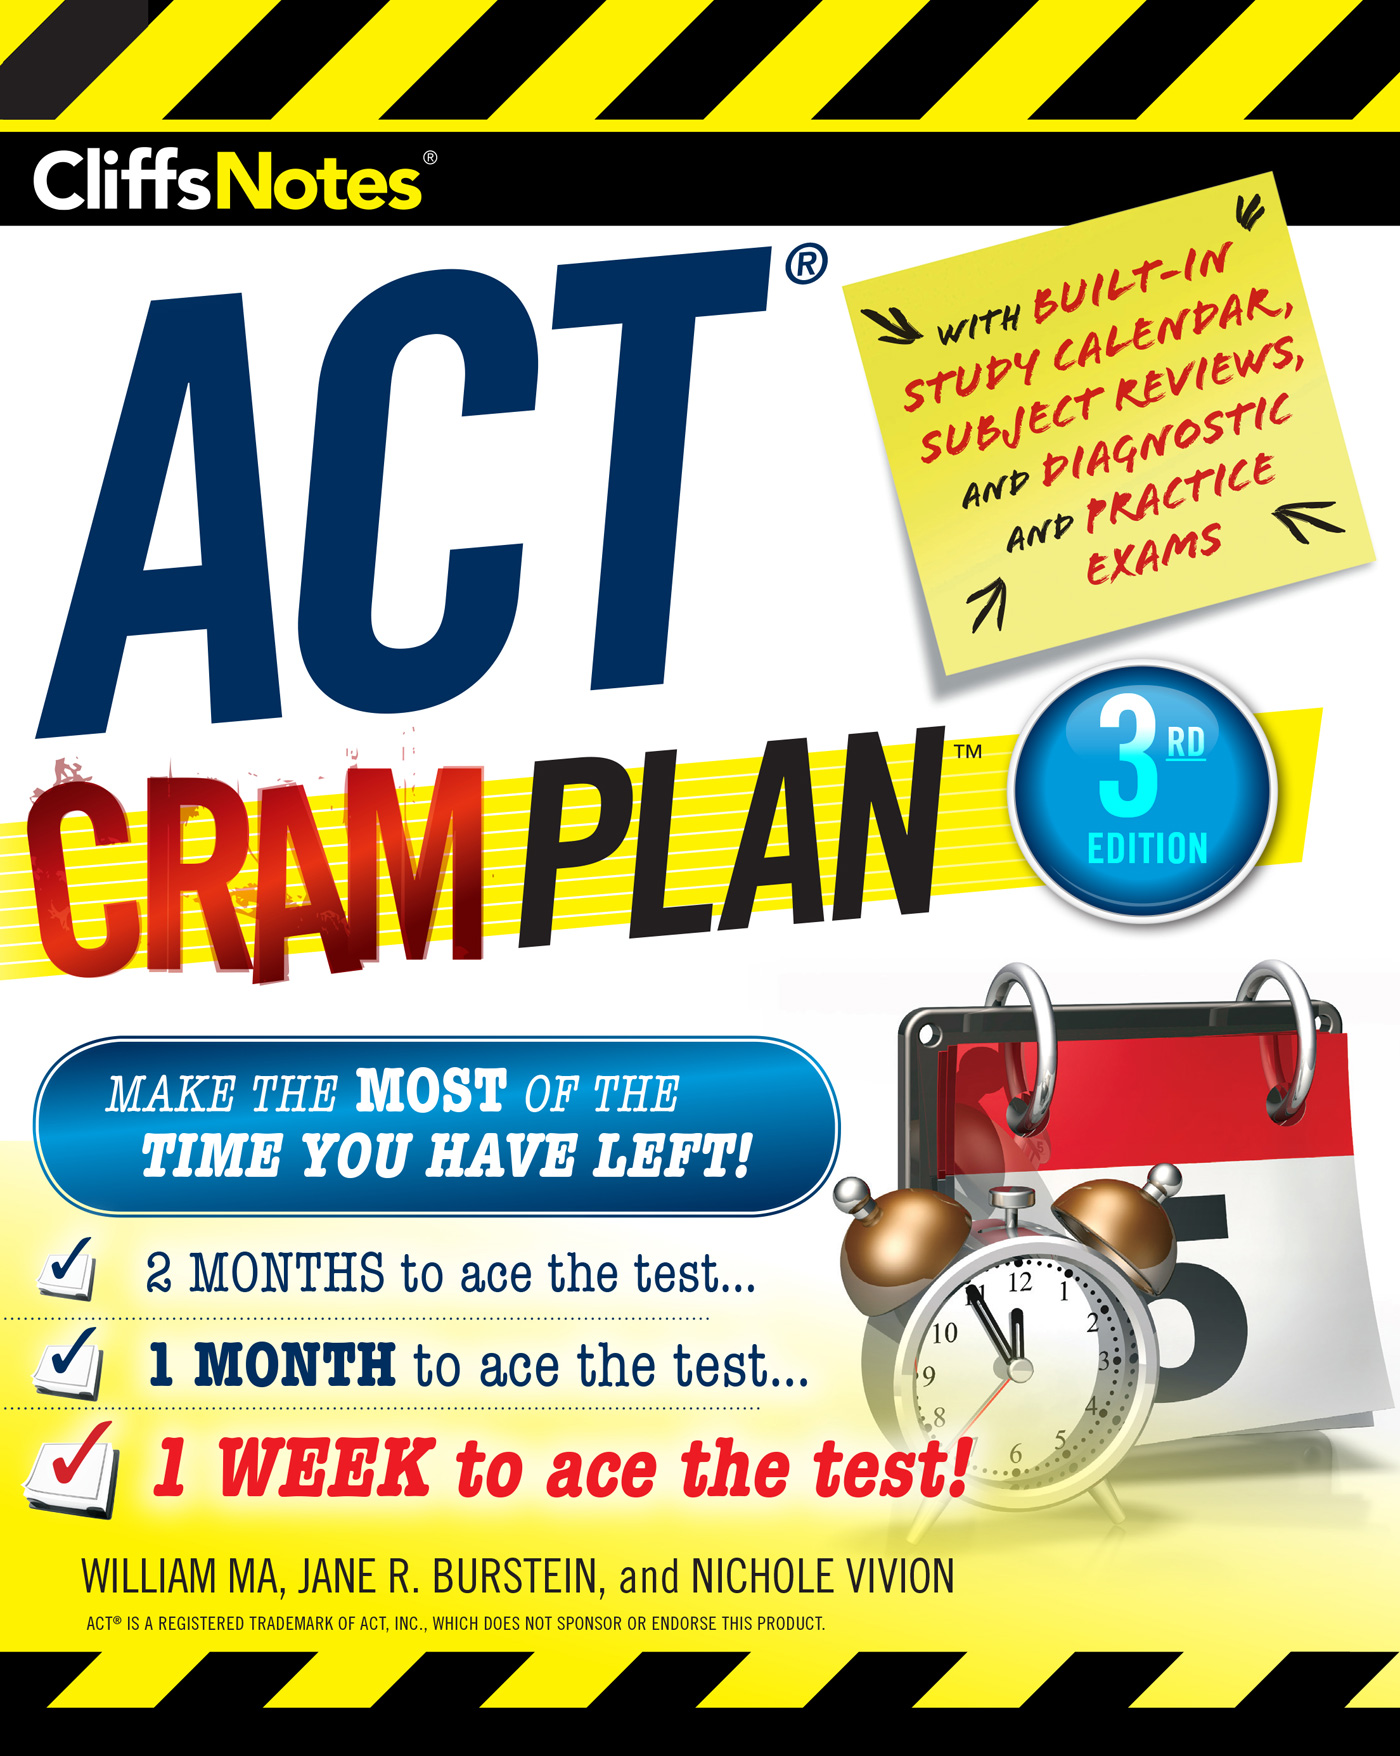 CliffsNotes ACT Cram Plan, 3rd Edition-9780544836600